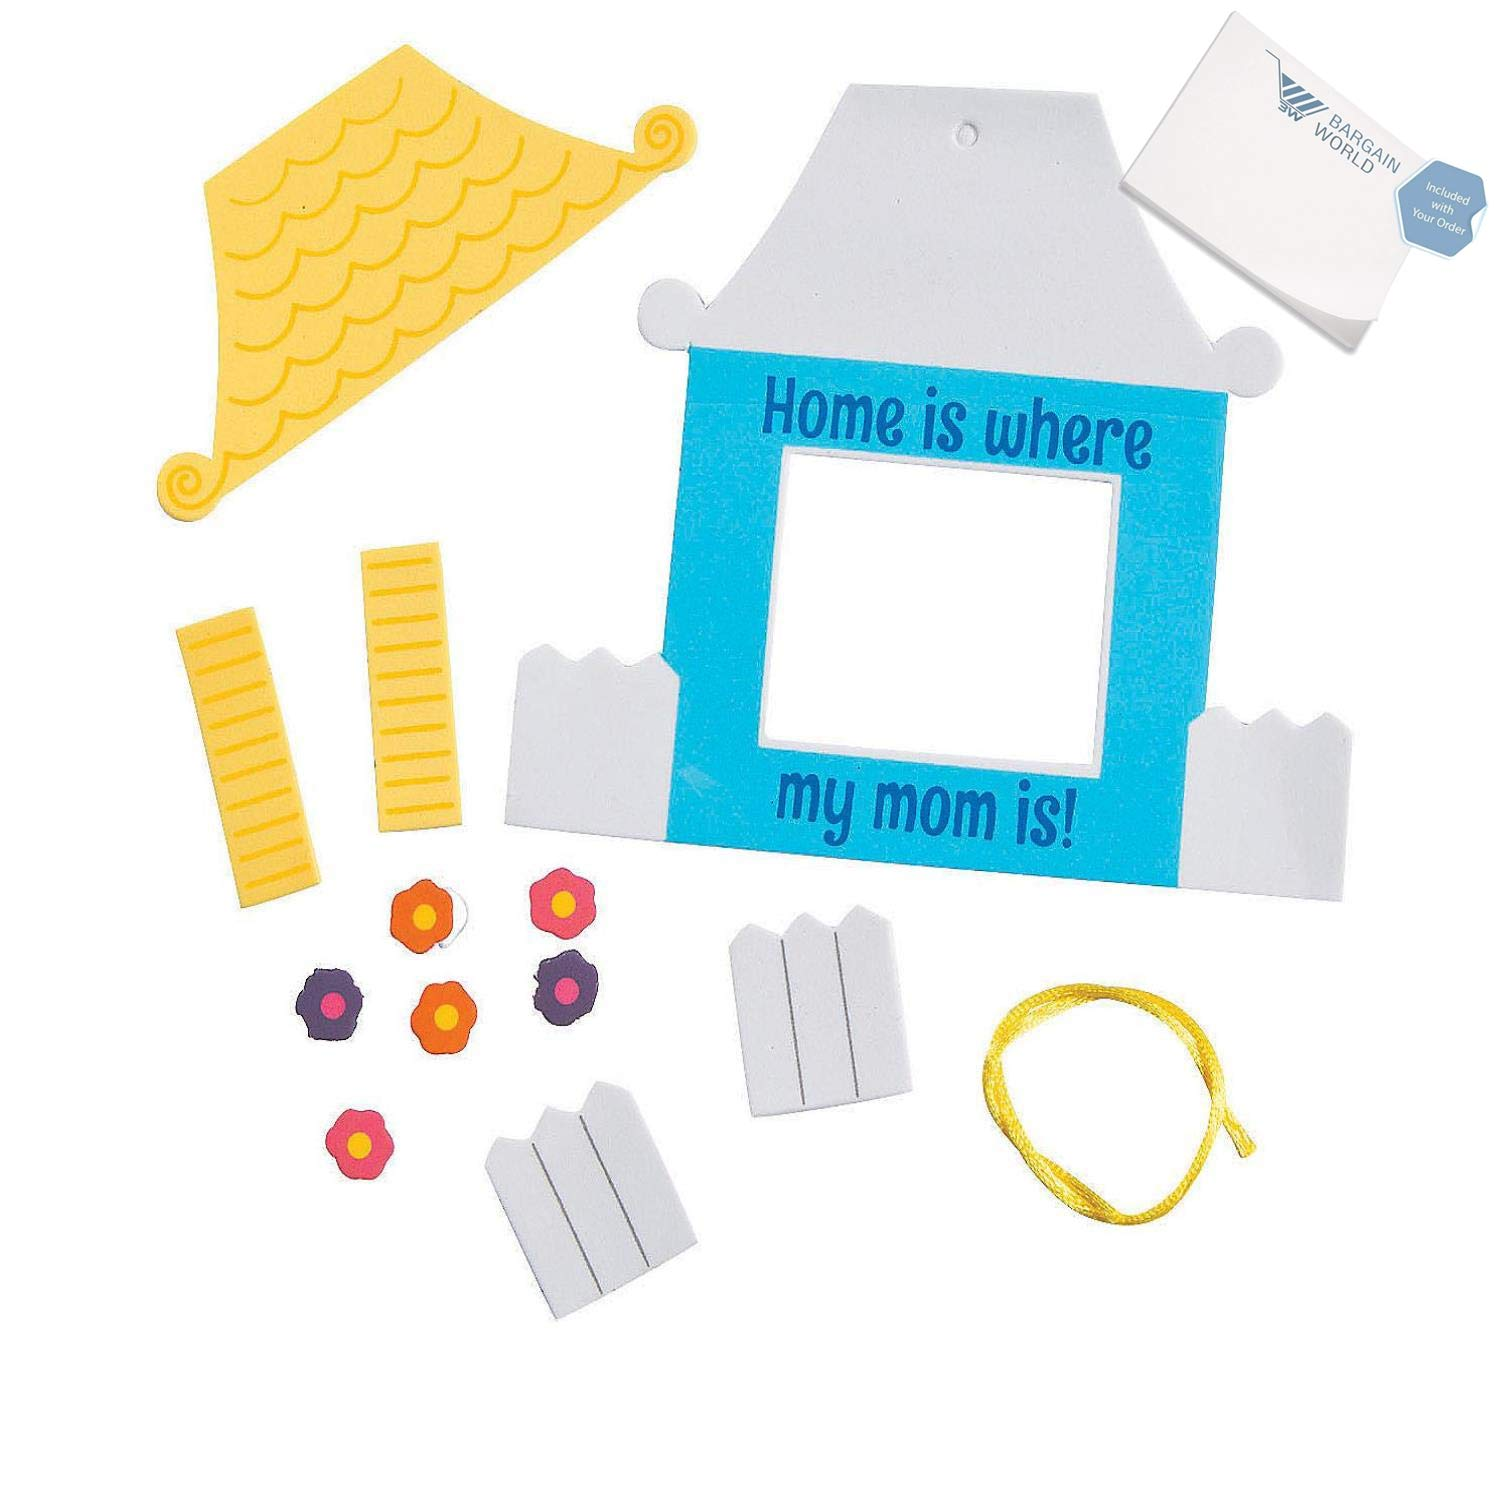 Bargain World Home Is Where My Mom Is Picture Frame Craft Kit (With Sticky Notes) by Bargain World (Image #2)